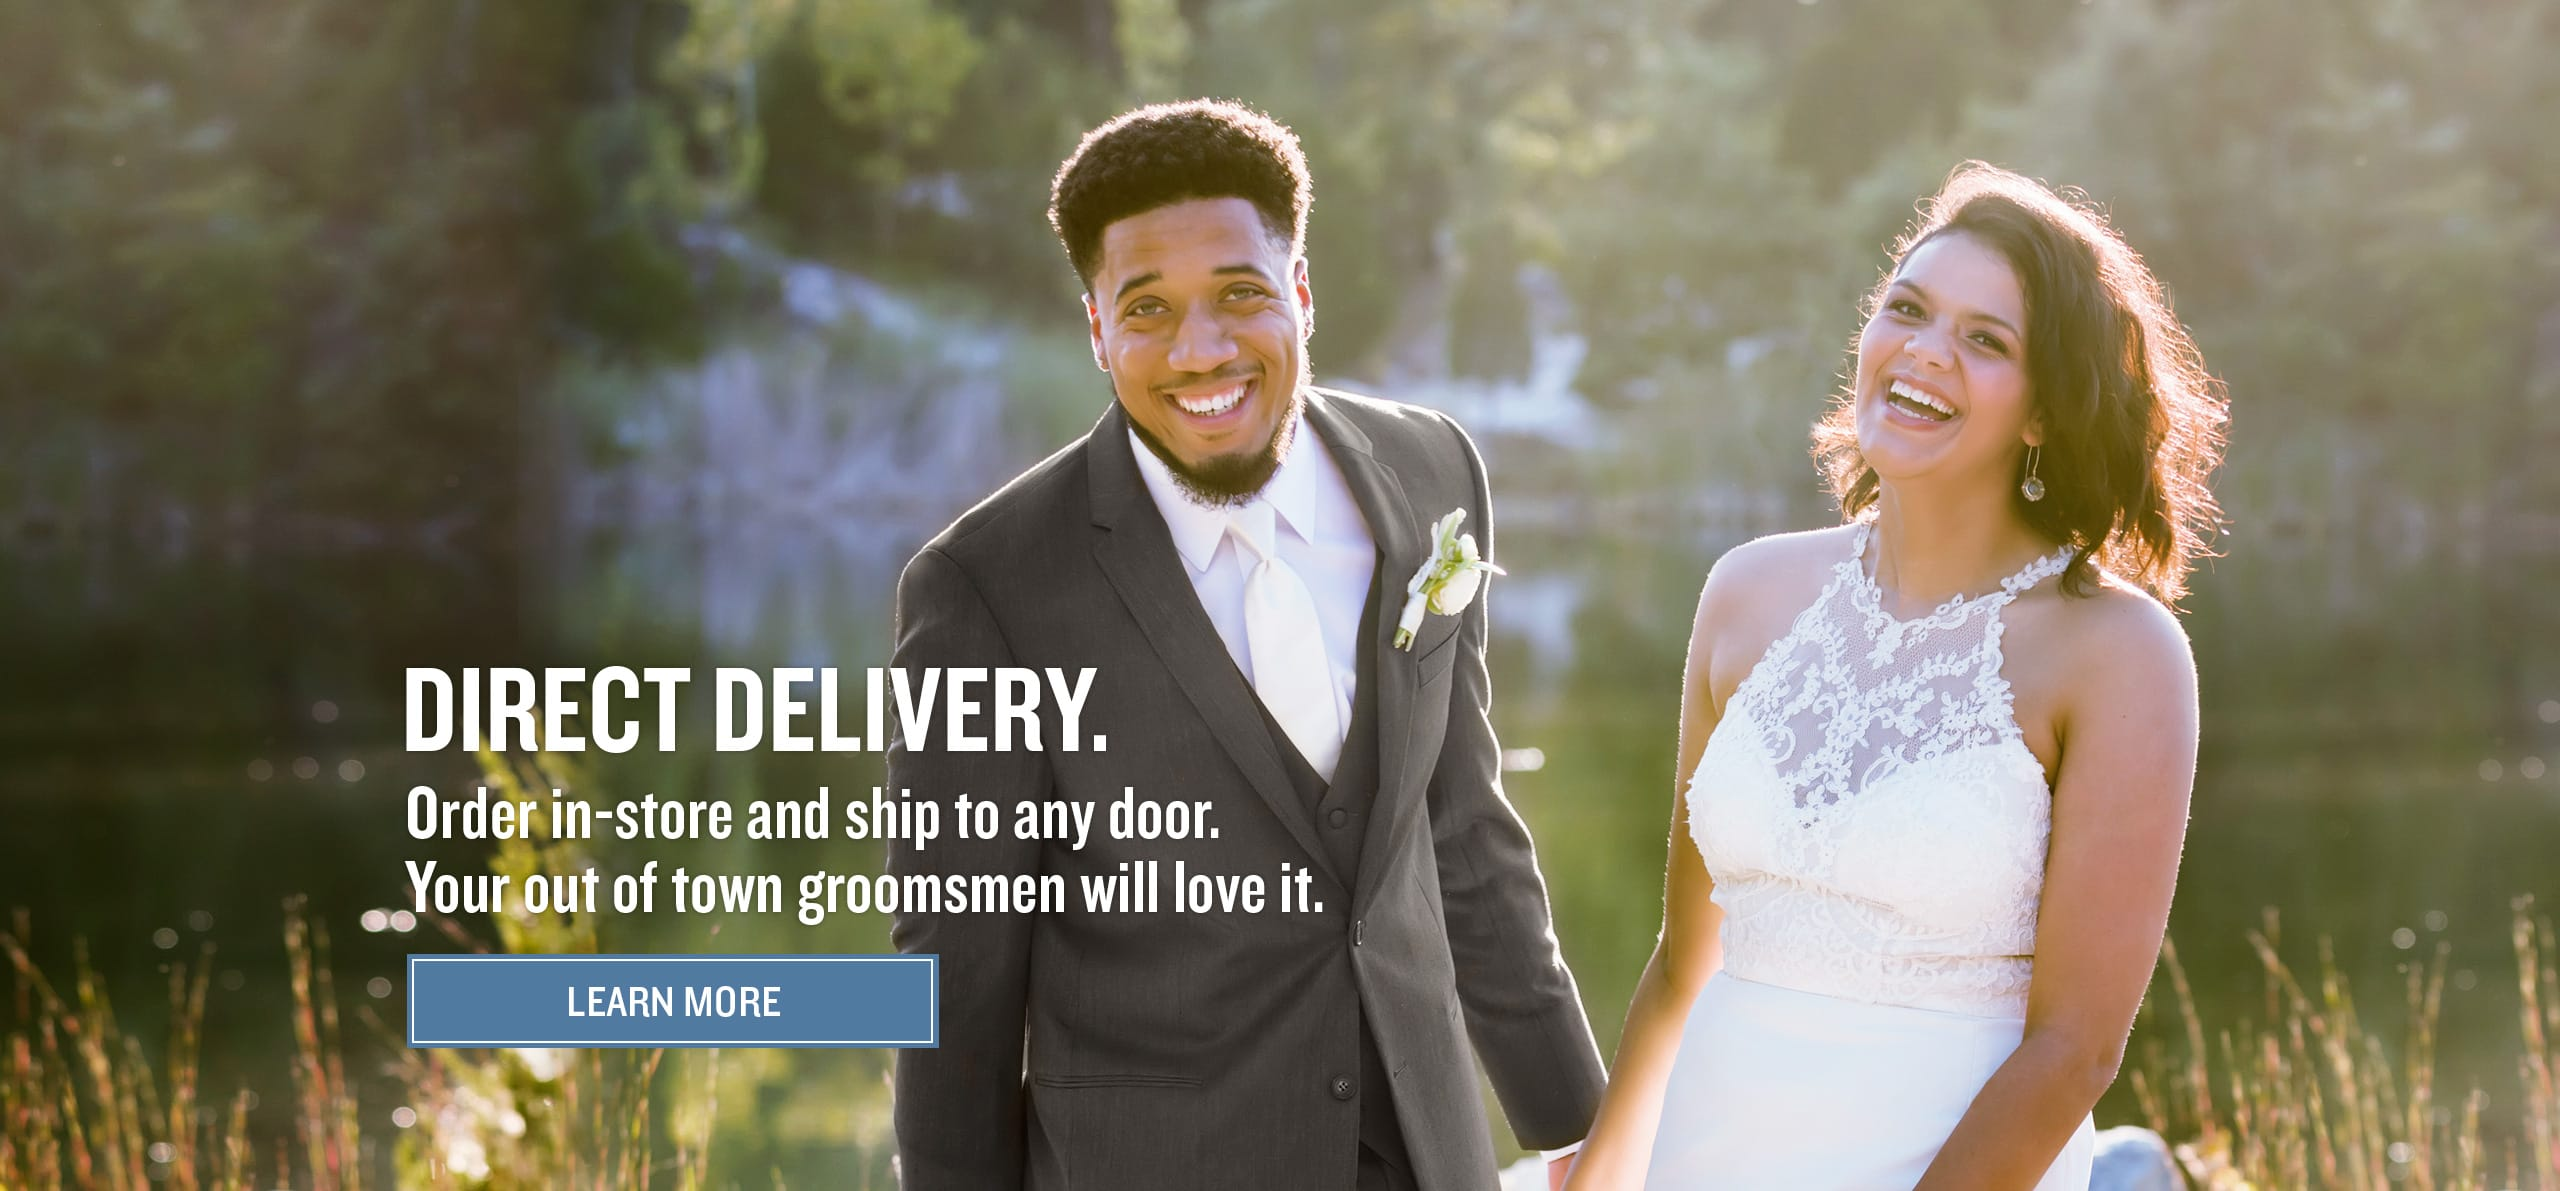 Benefit from personalized service in-store then ship the tuxedo or suit to your home.